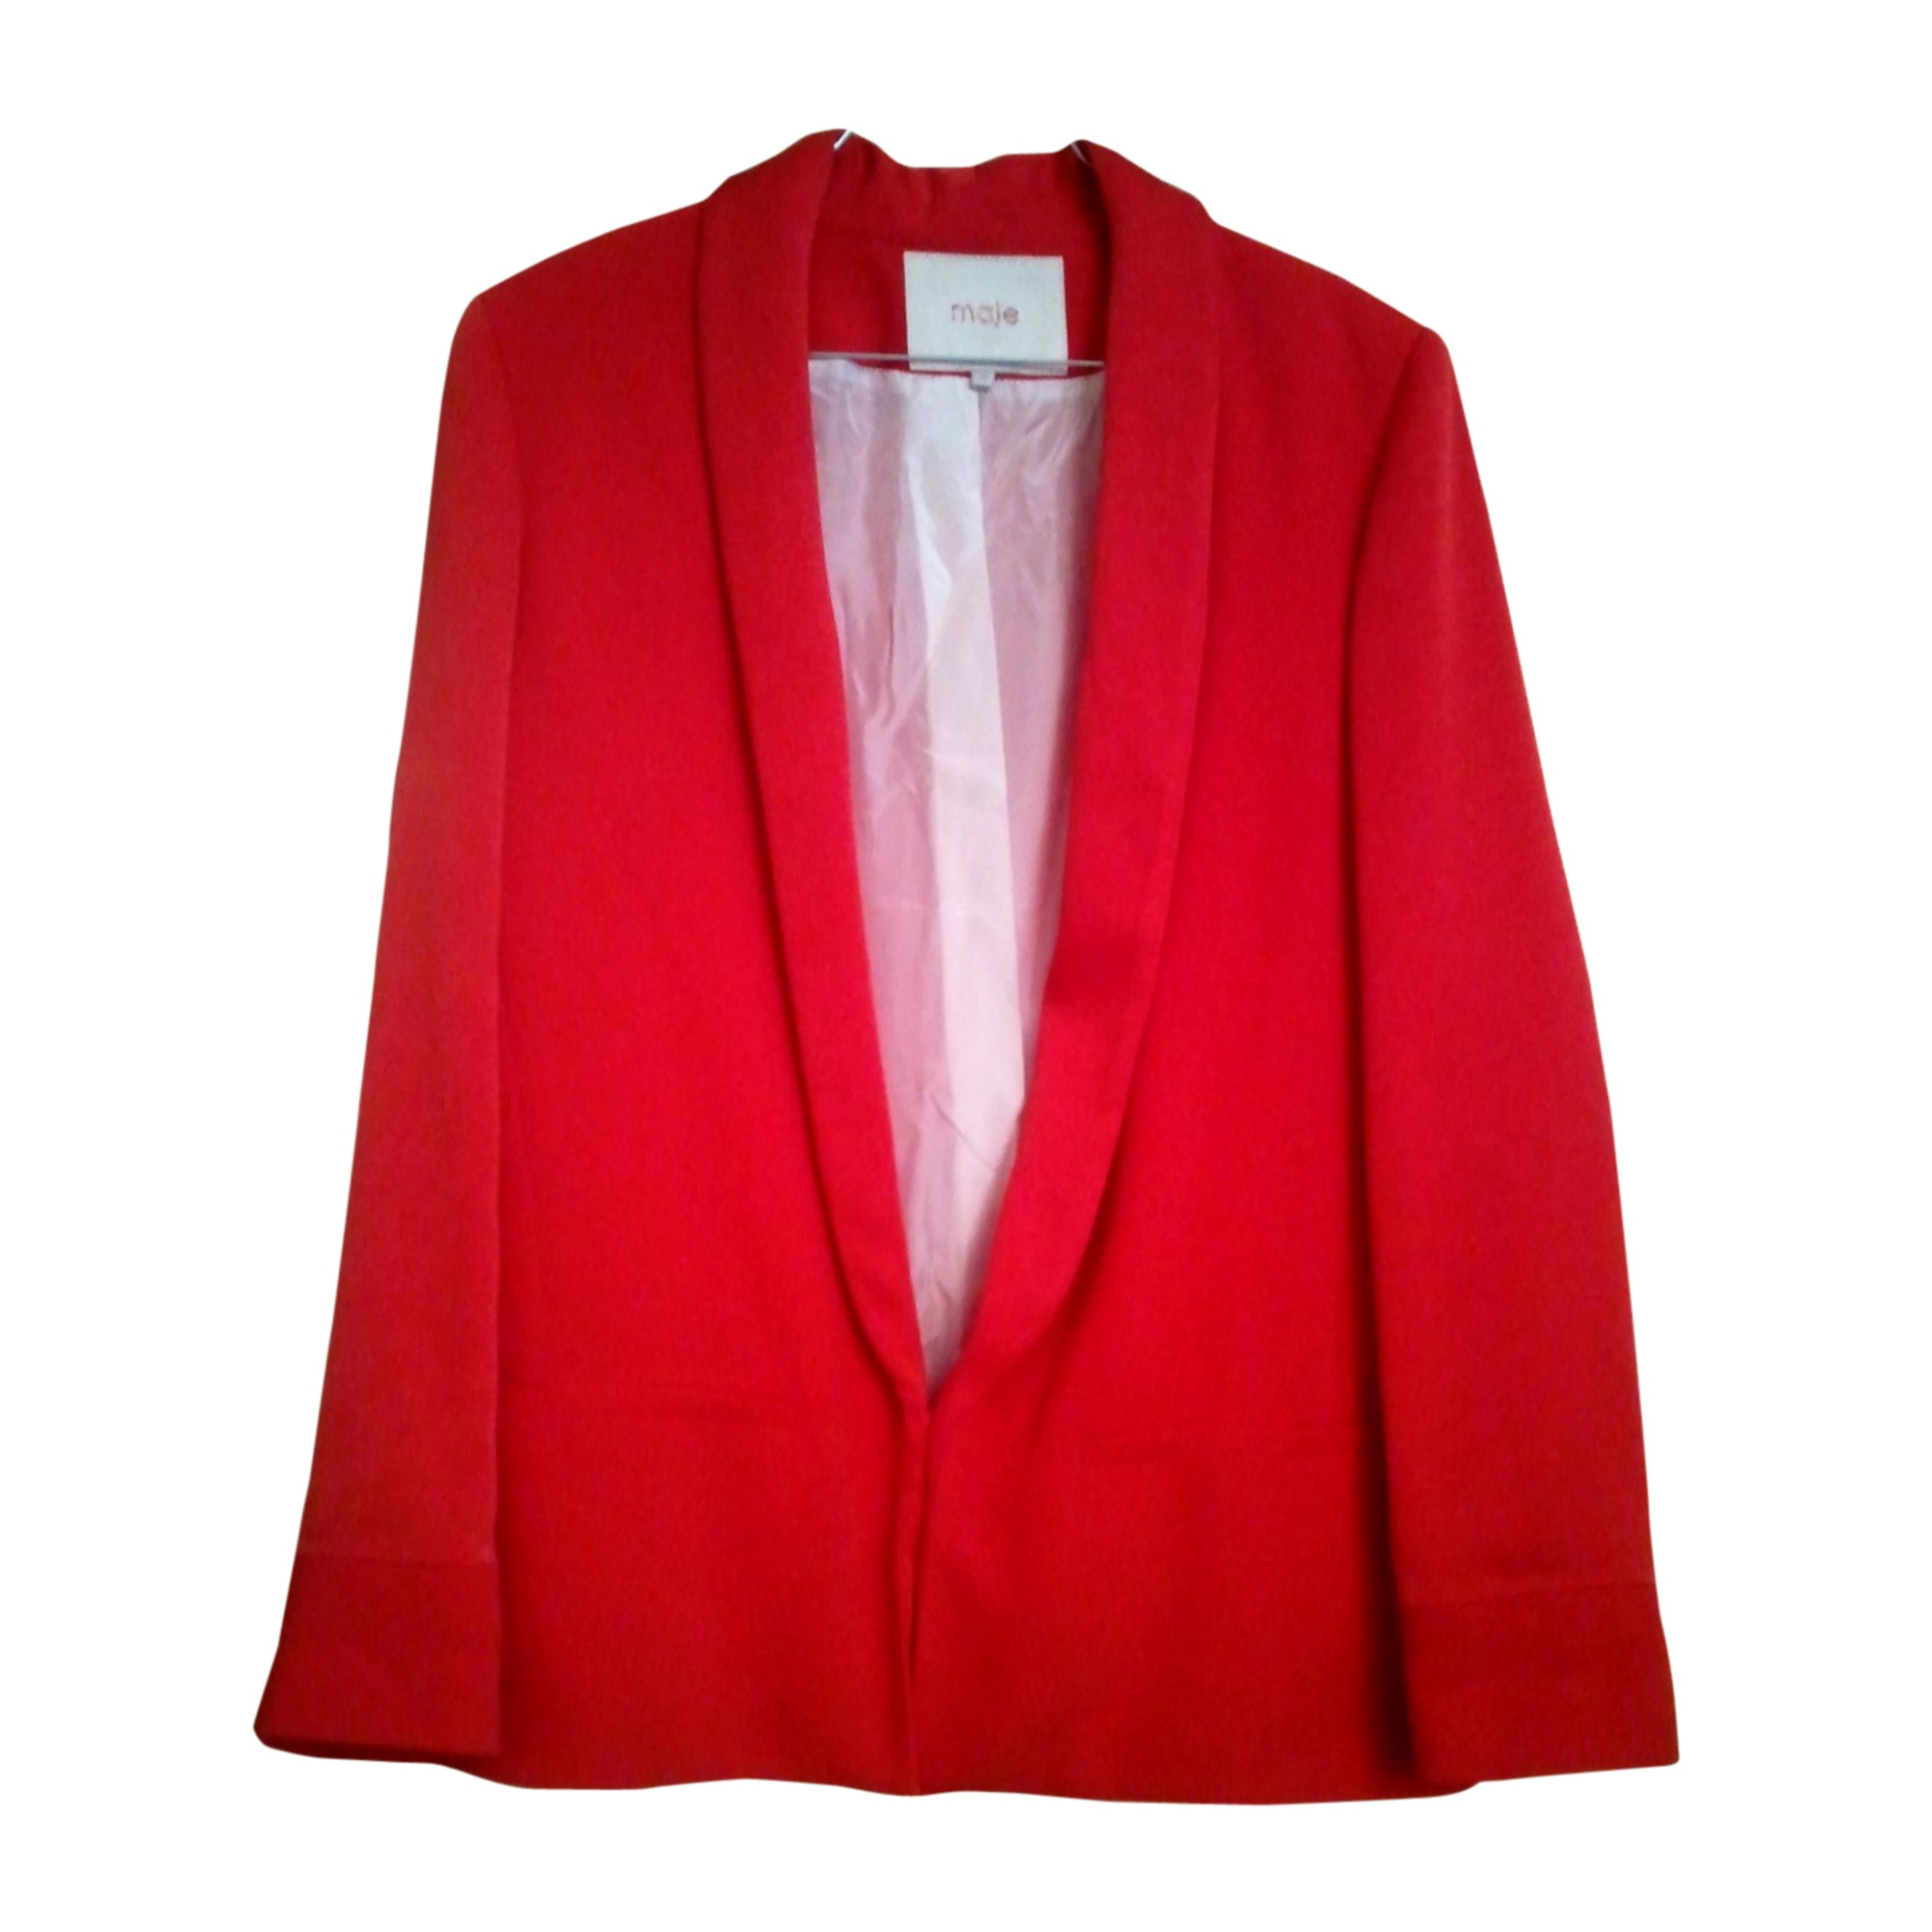 Blazer Rouge 1675884 Tailleur s 36 Veste Maje T1 r7THqwrSY